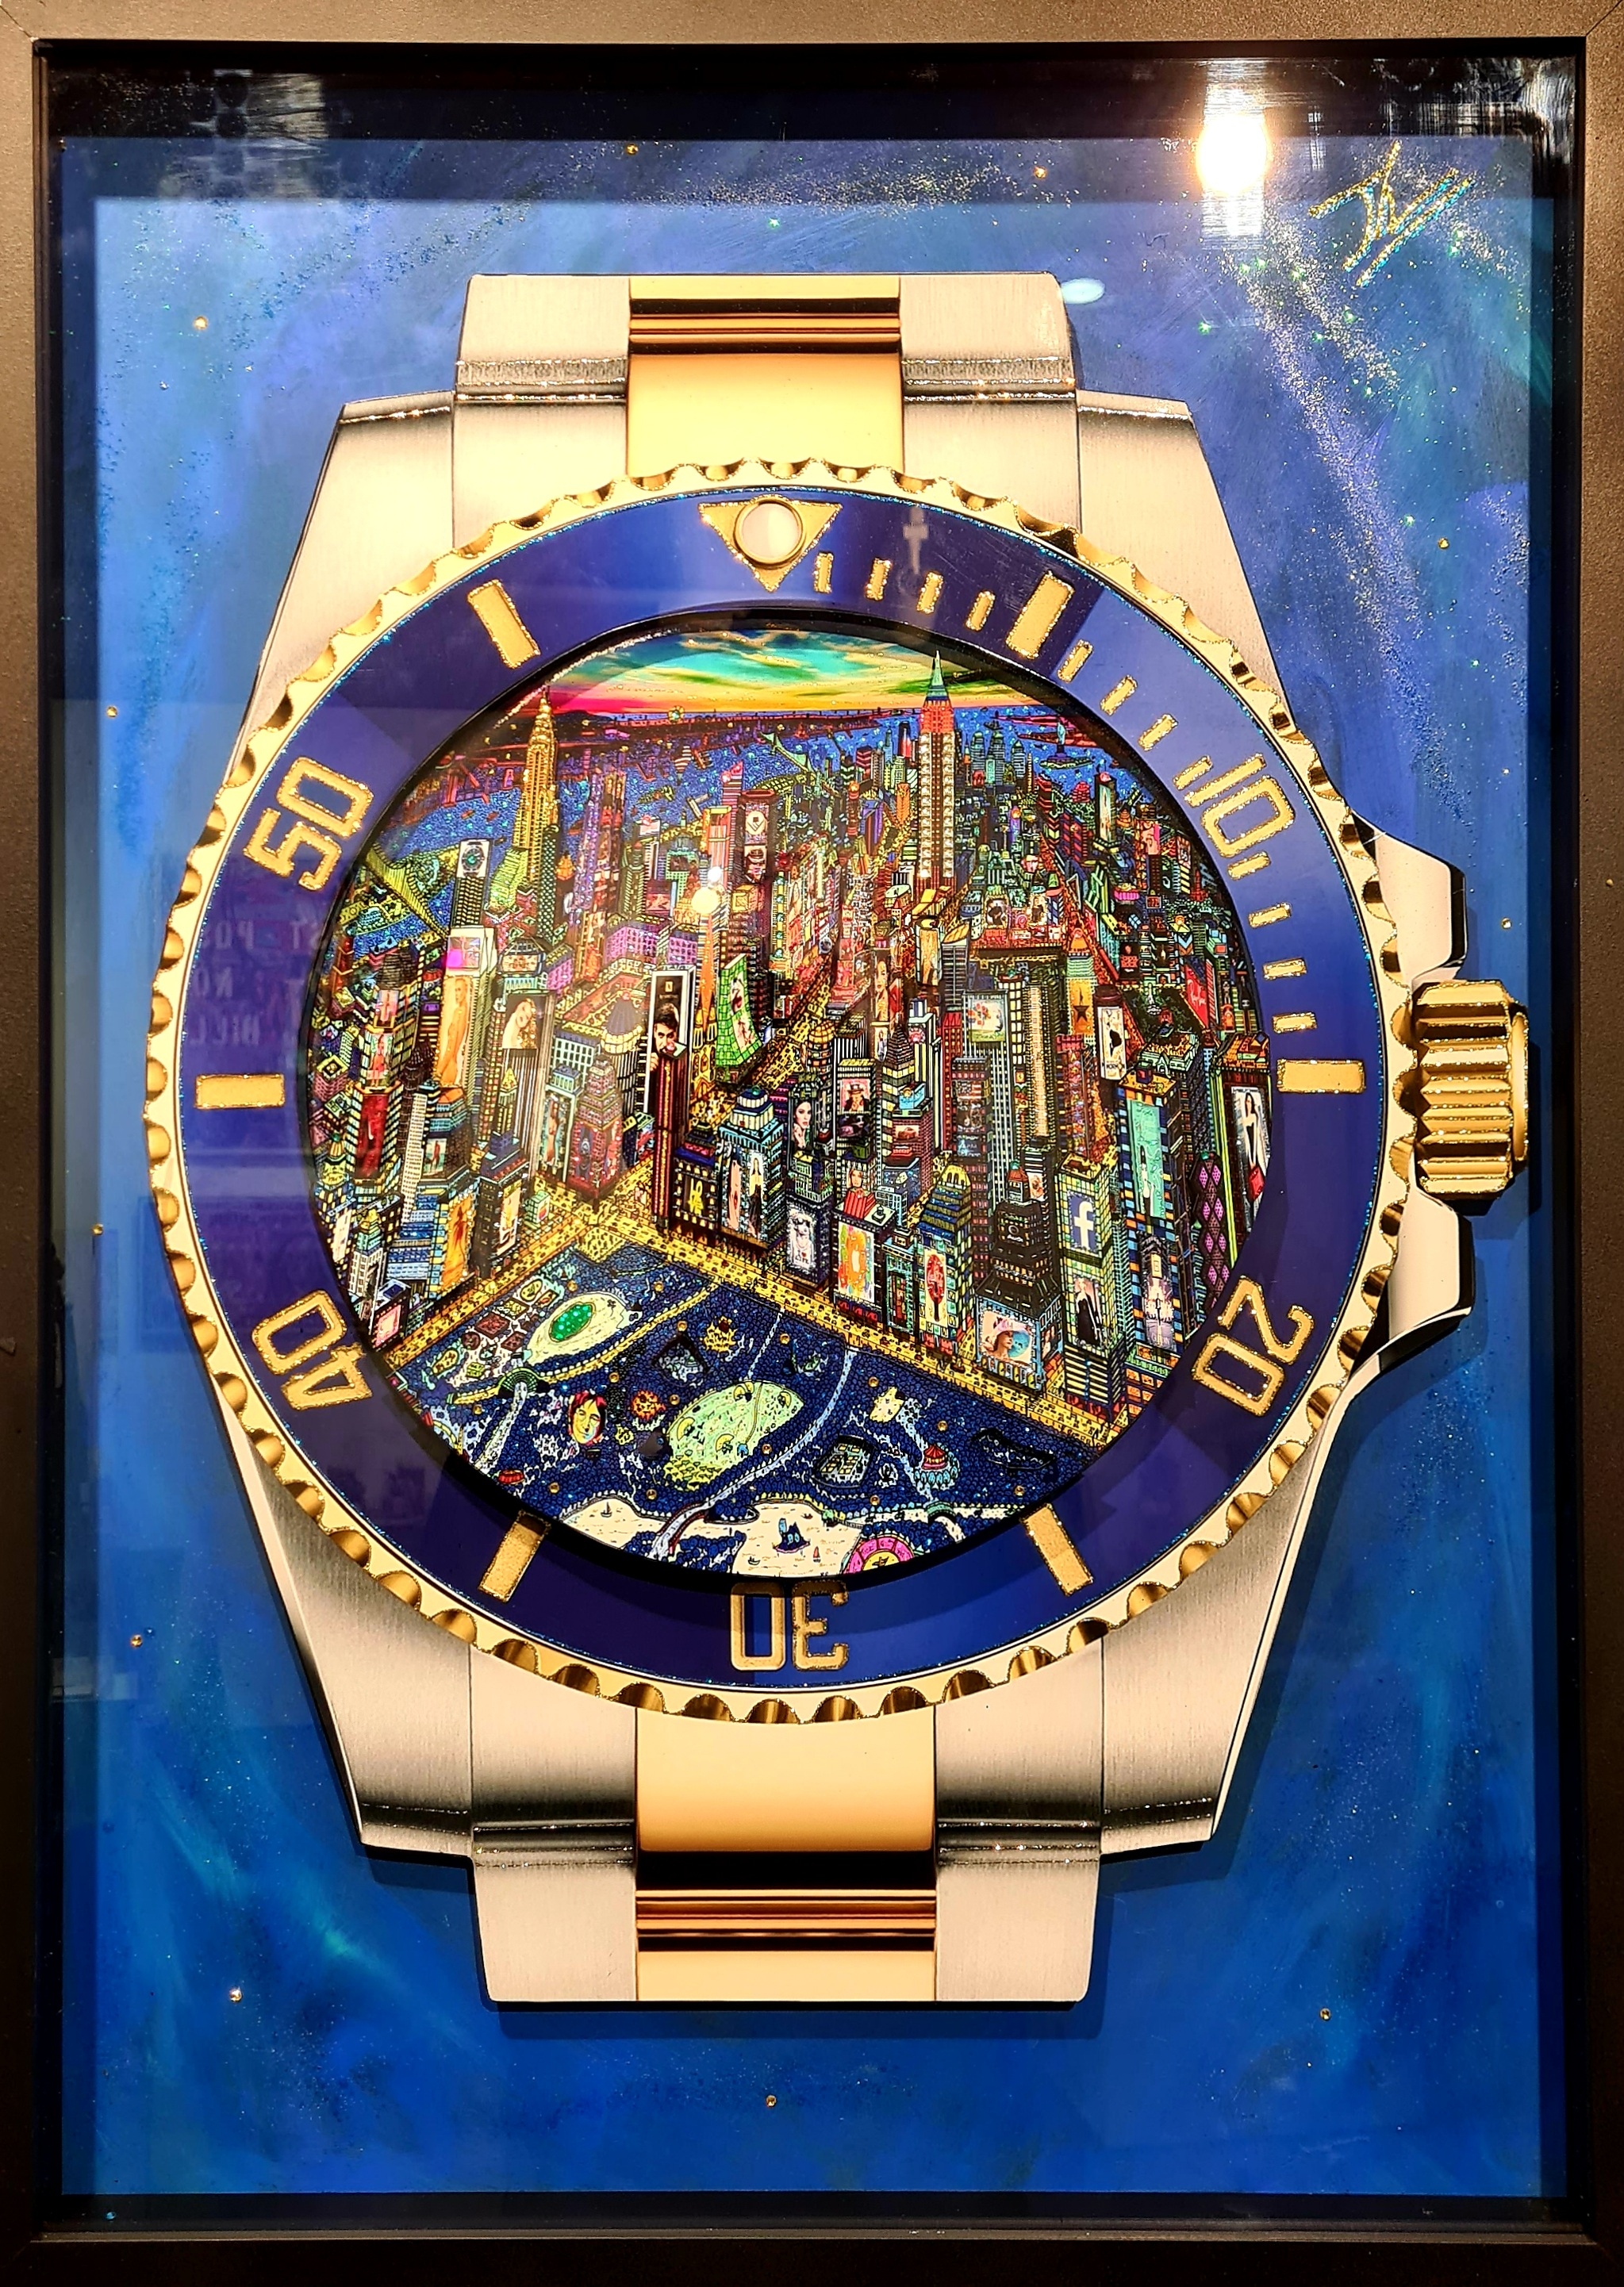 Rolex New York City by Night 72X52CM